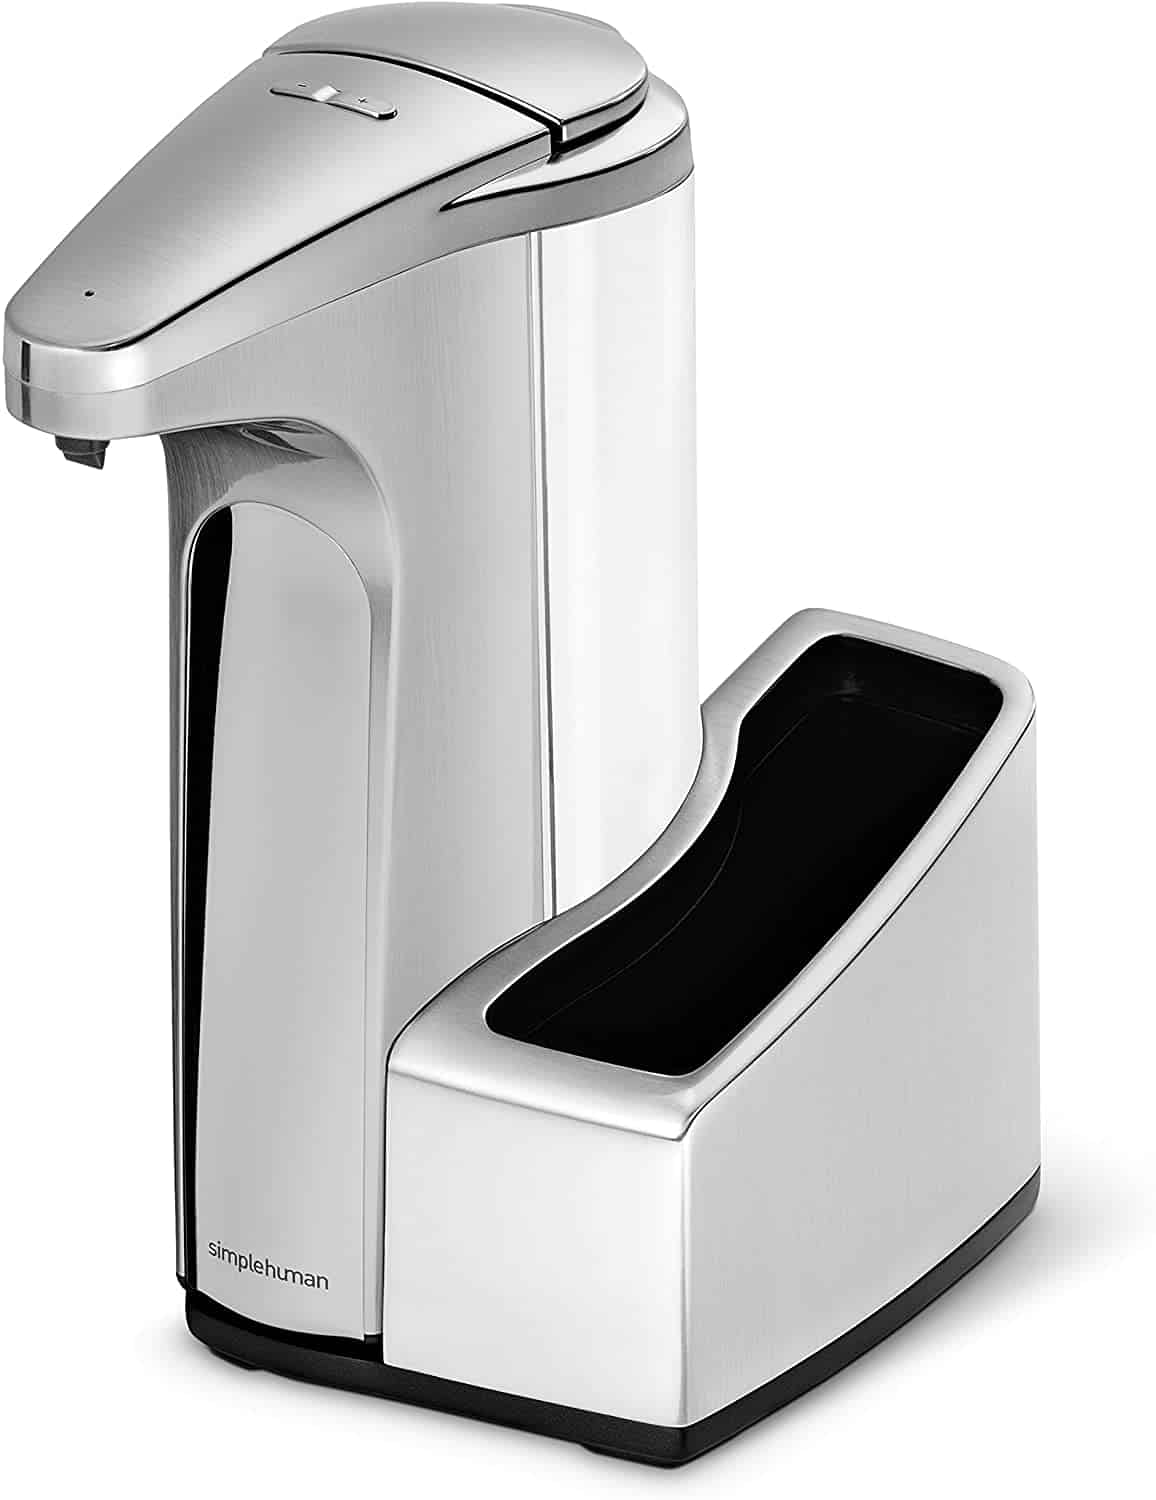 Simplehuman 13 oz. Touch-Free Automatic Soap Pump